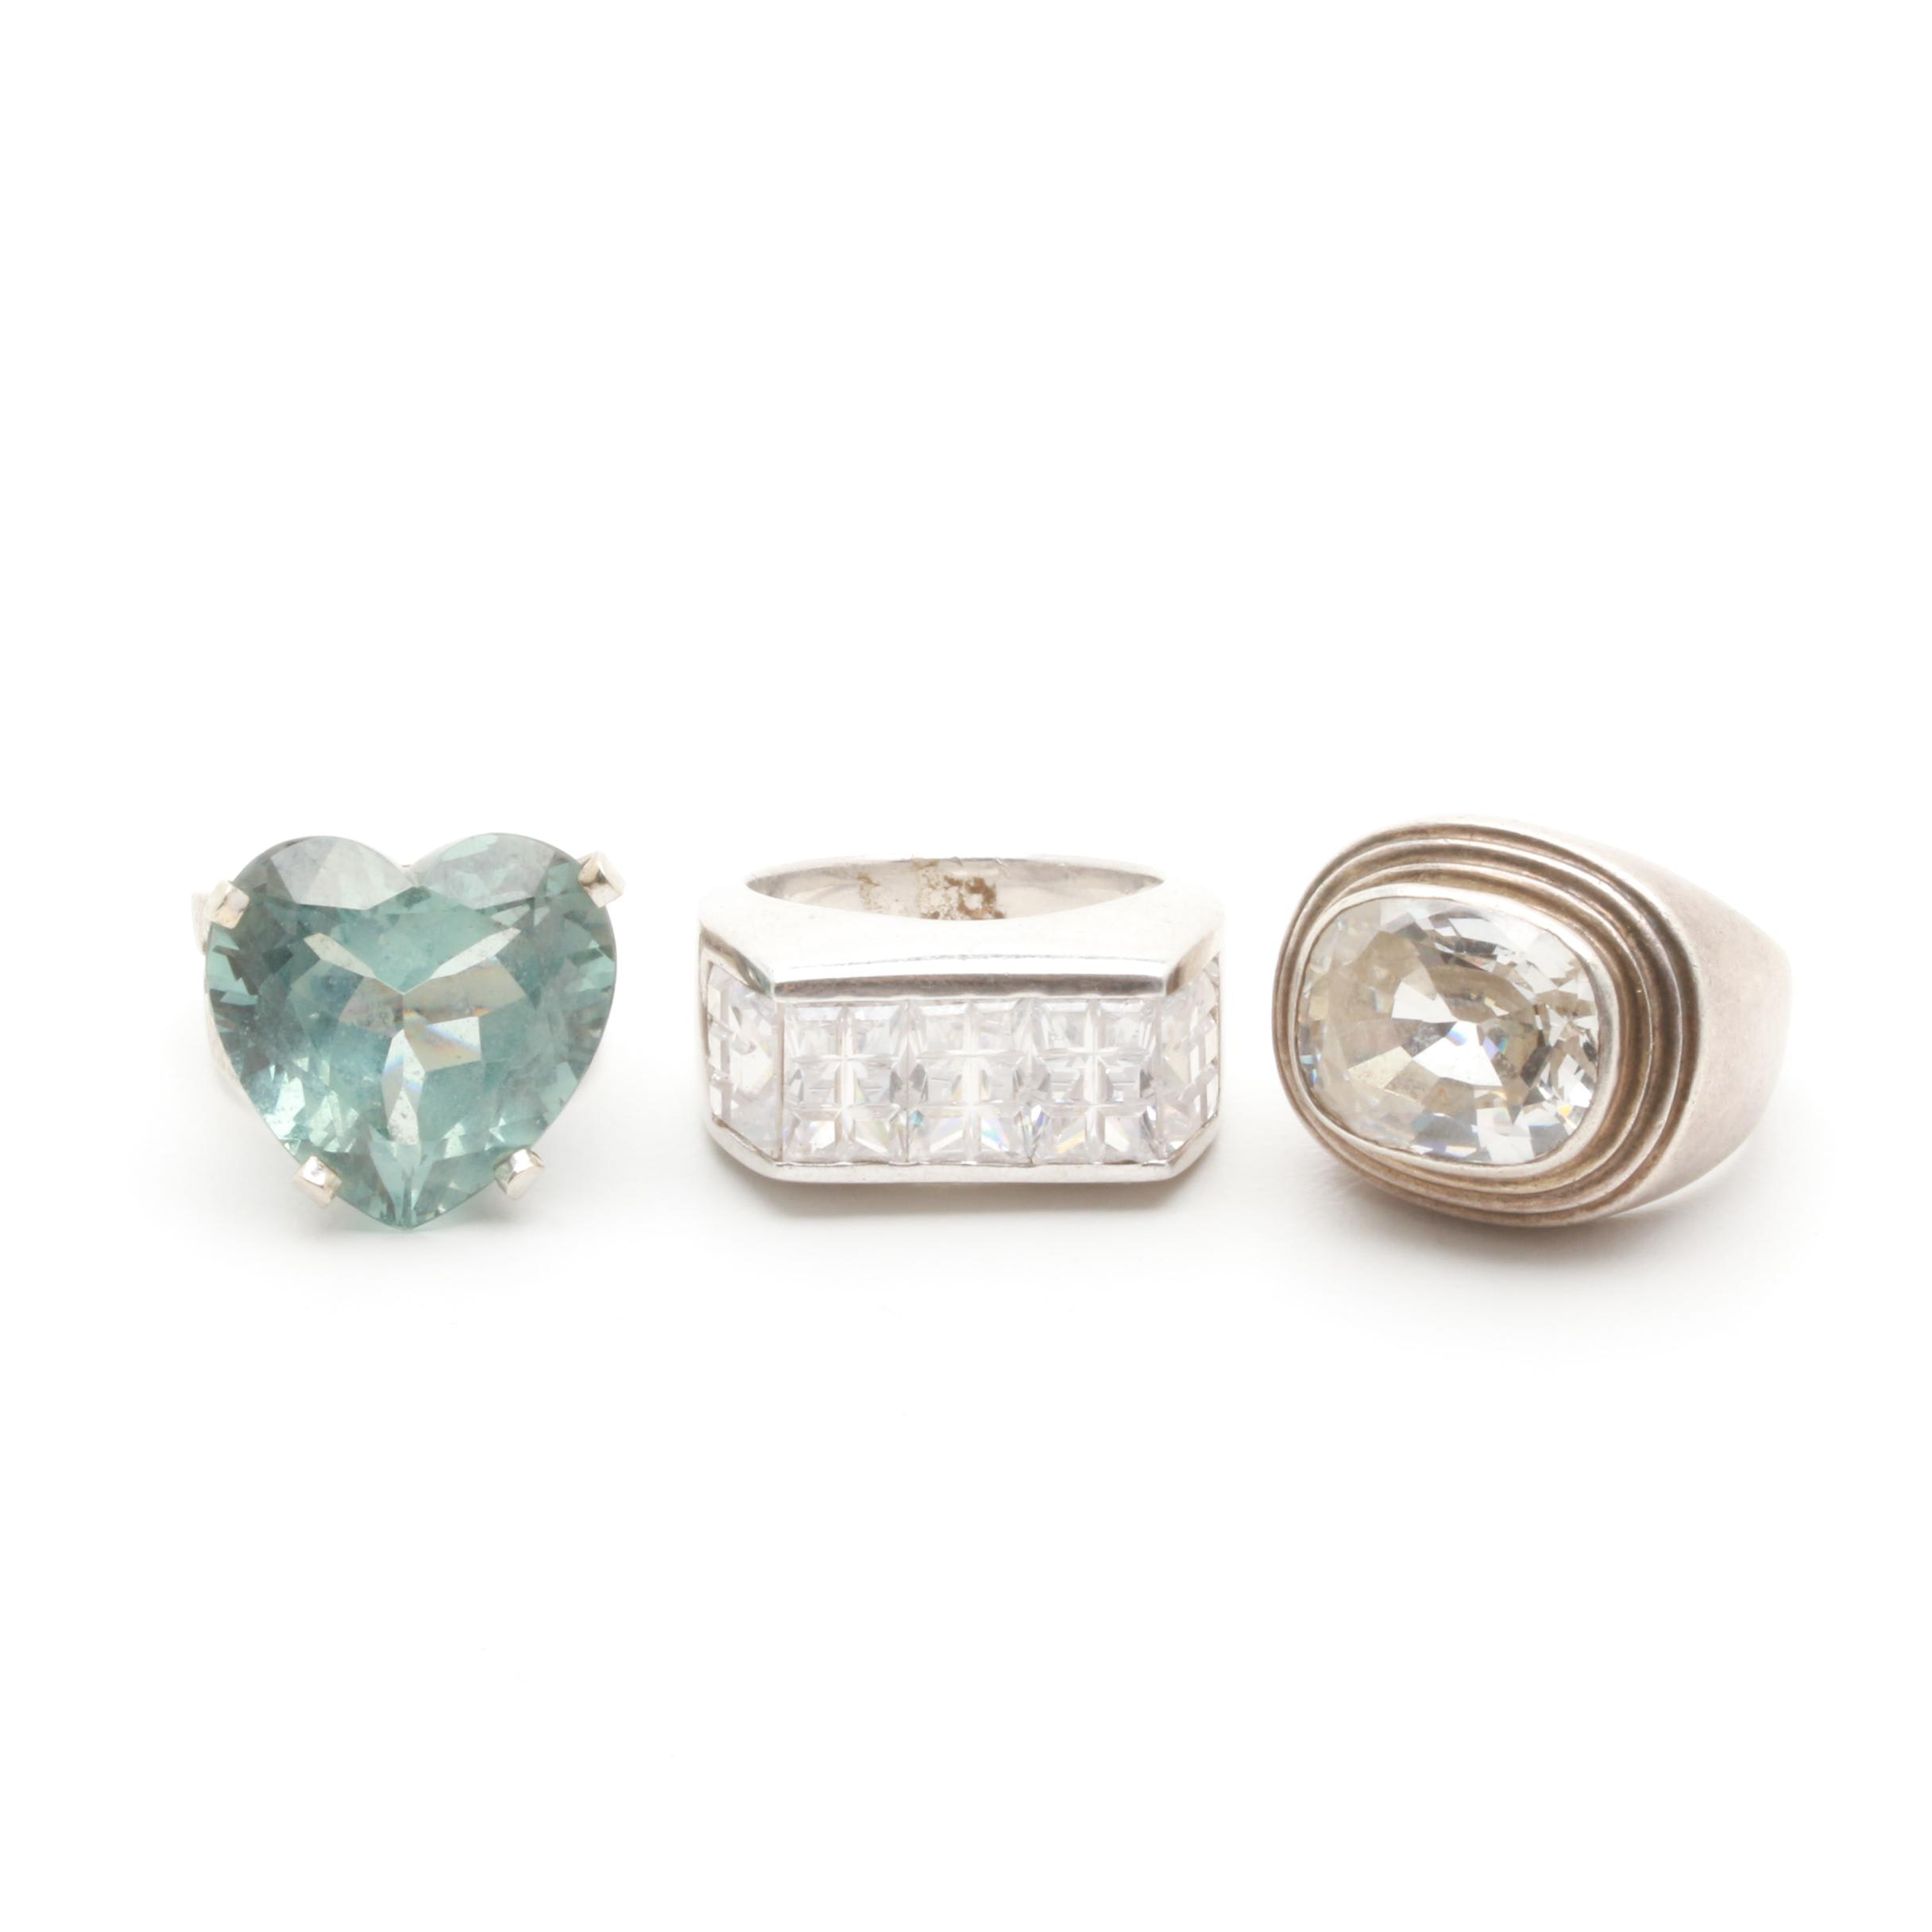 Sterling Silver Ring Selection Including Blue Topaz and Cubic Zirconia